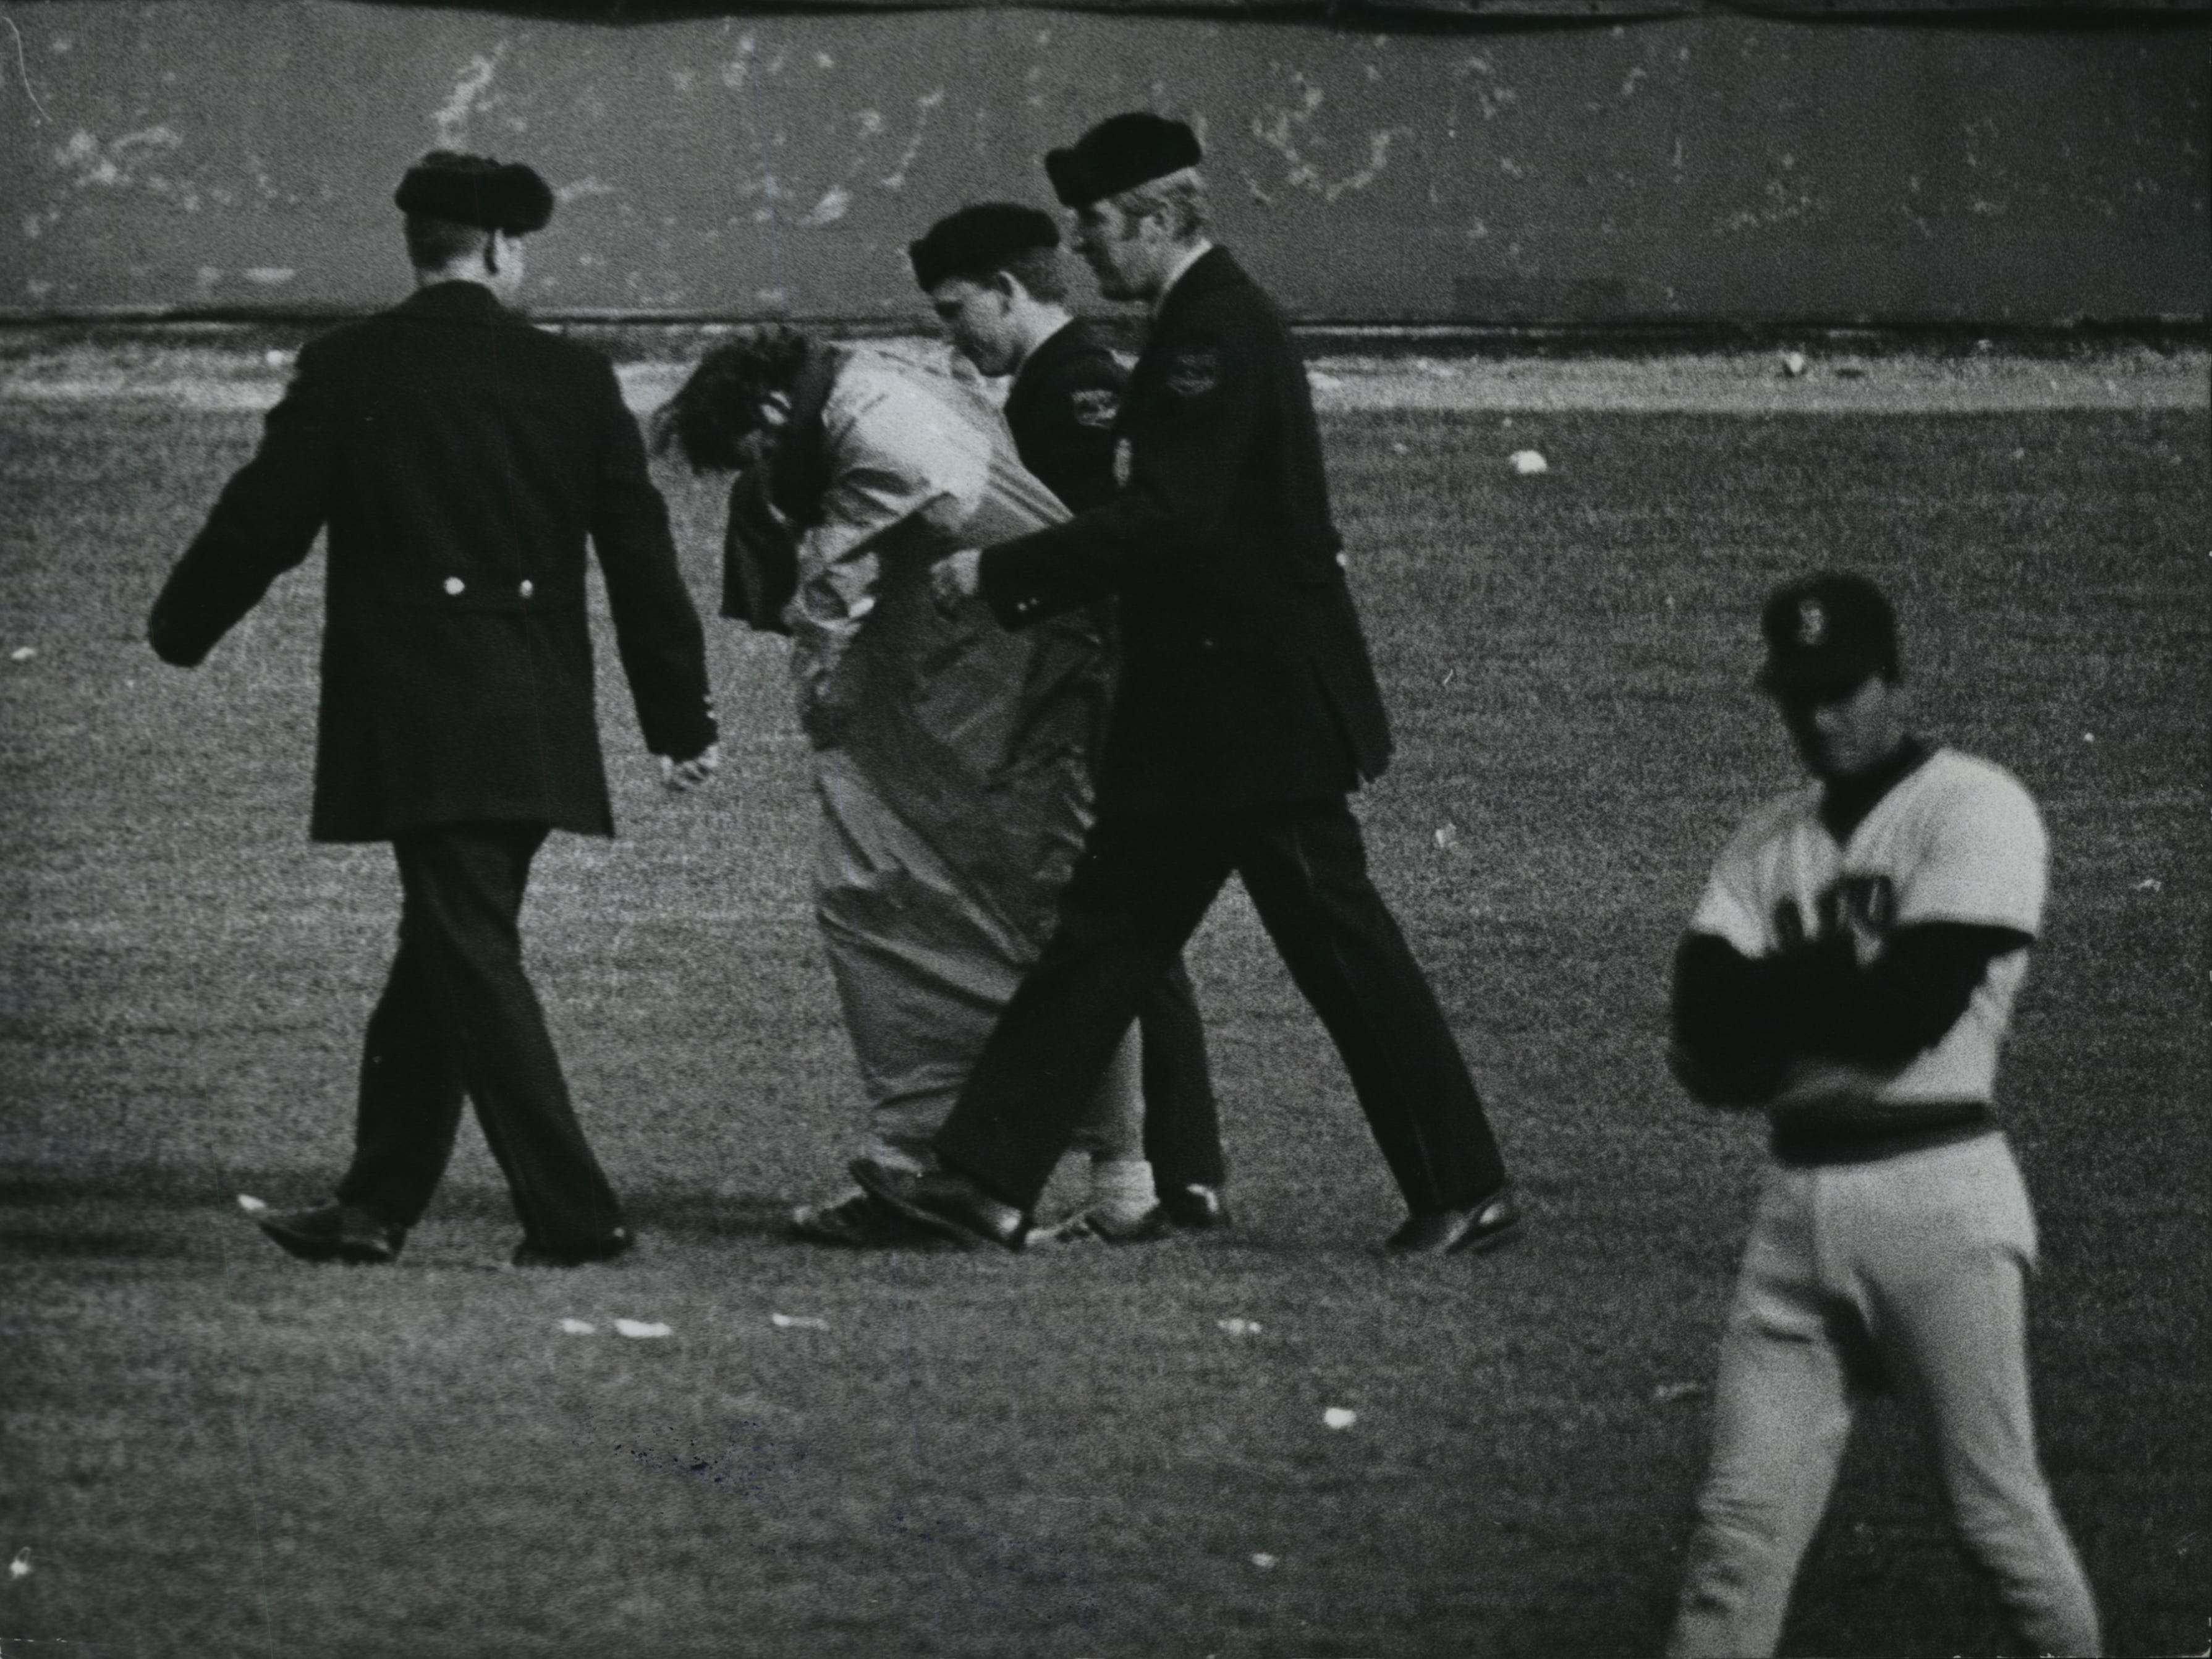 Three Milwaukee police officers escort a young man from the outfield after the man tried to streak across the field bottomless (as in, no pants), despite the day's freezing temperatures, at the Brewers' 1974 home opener at County Stadium on April 5, 1974. This photo was published in the April 6, 1974, Milwaukee Journal.